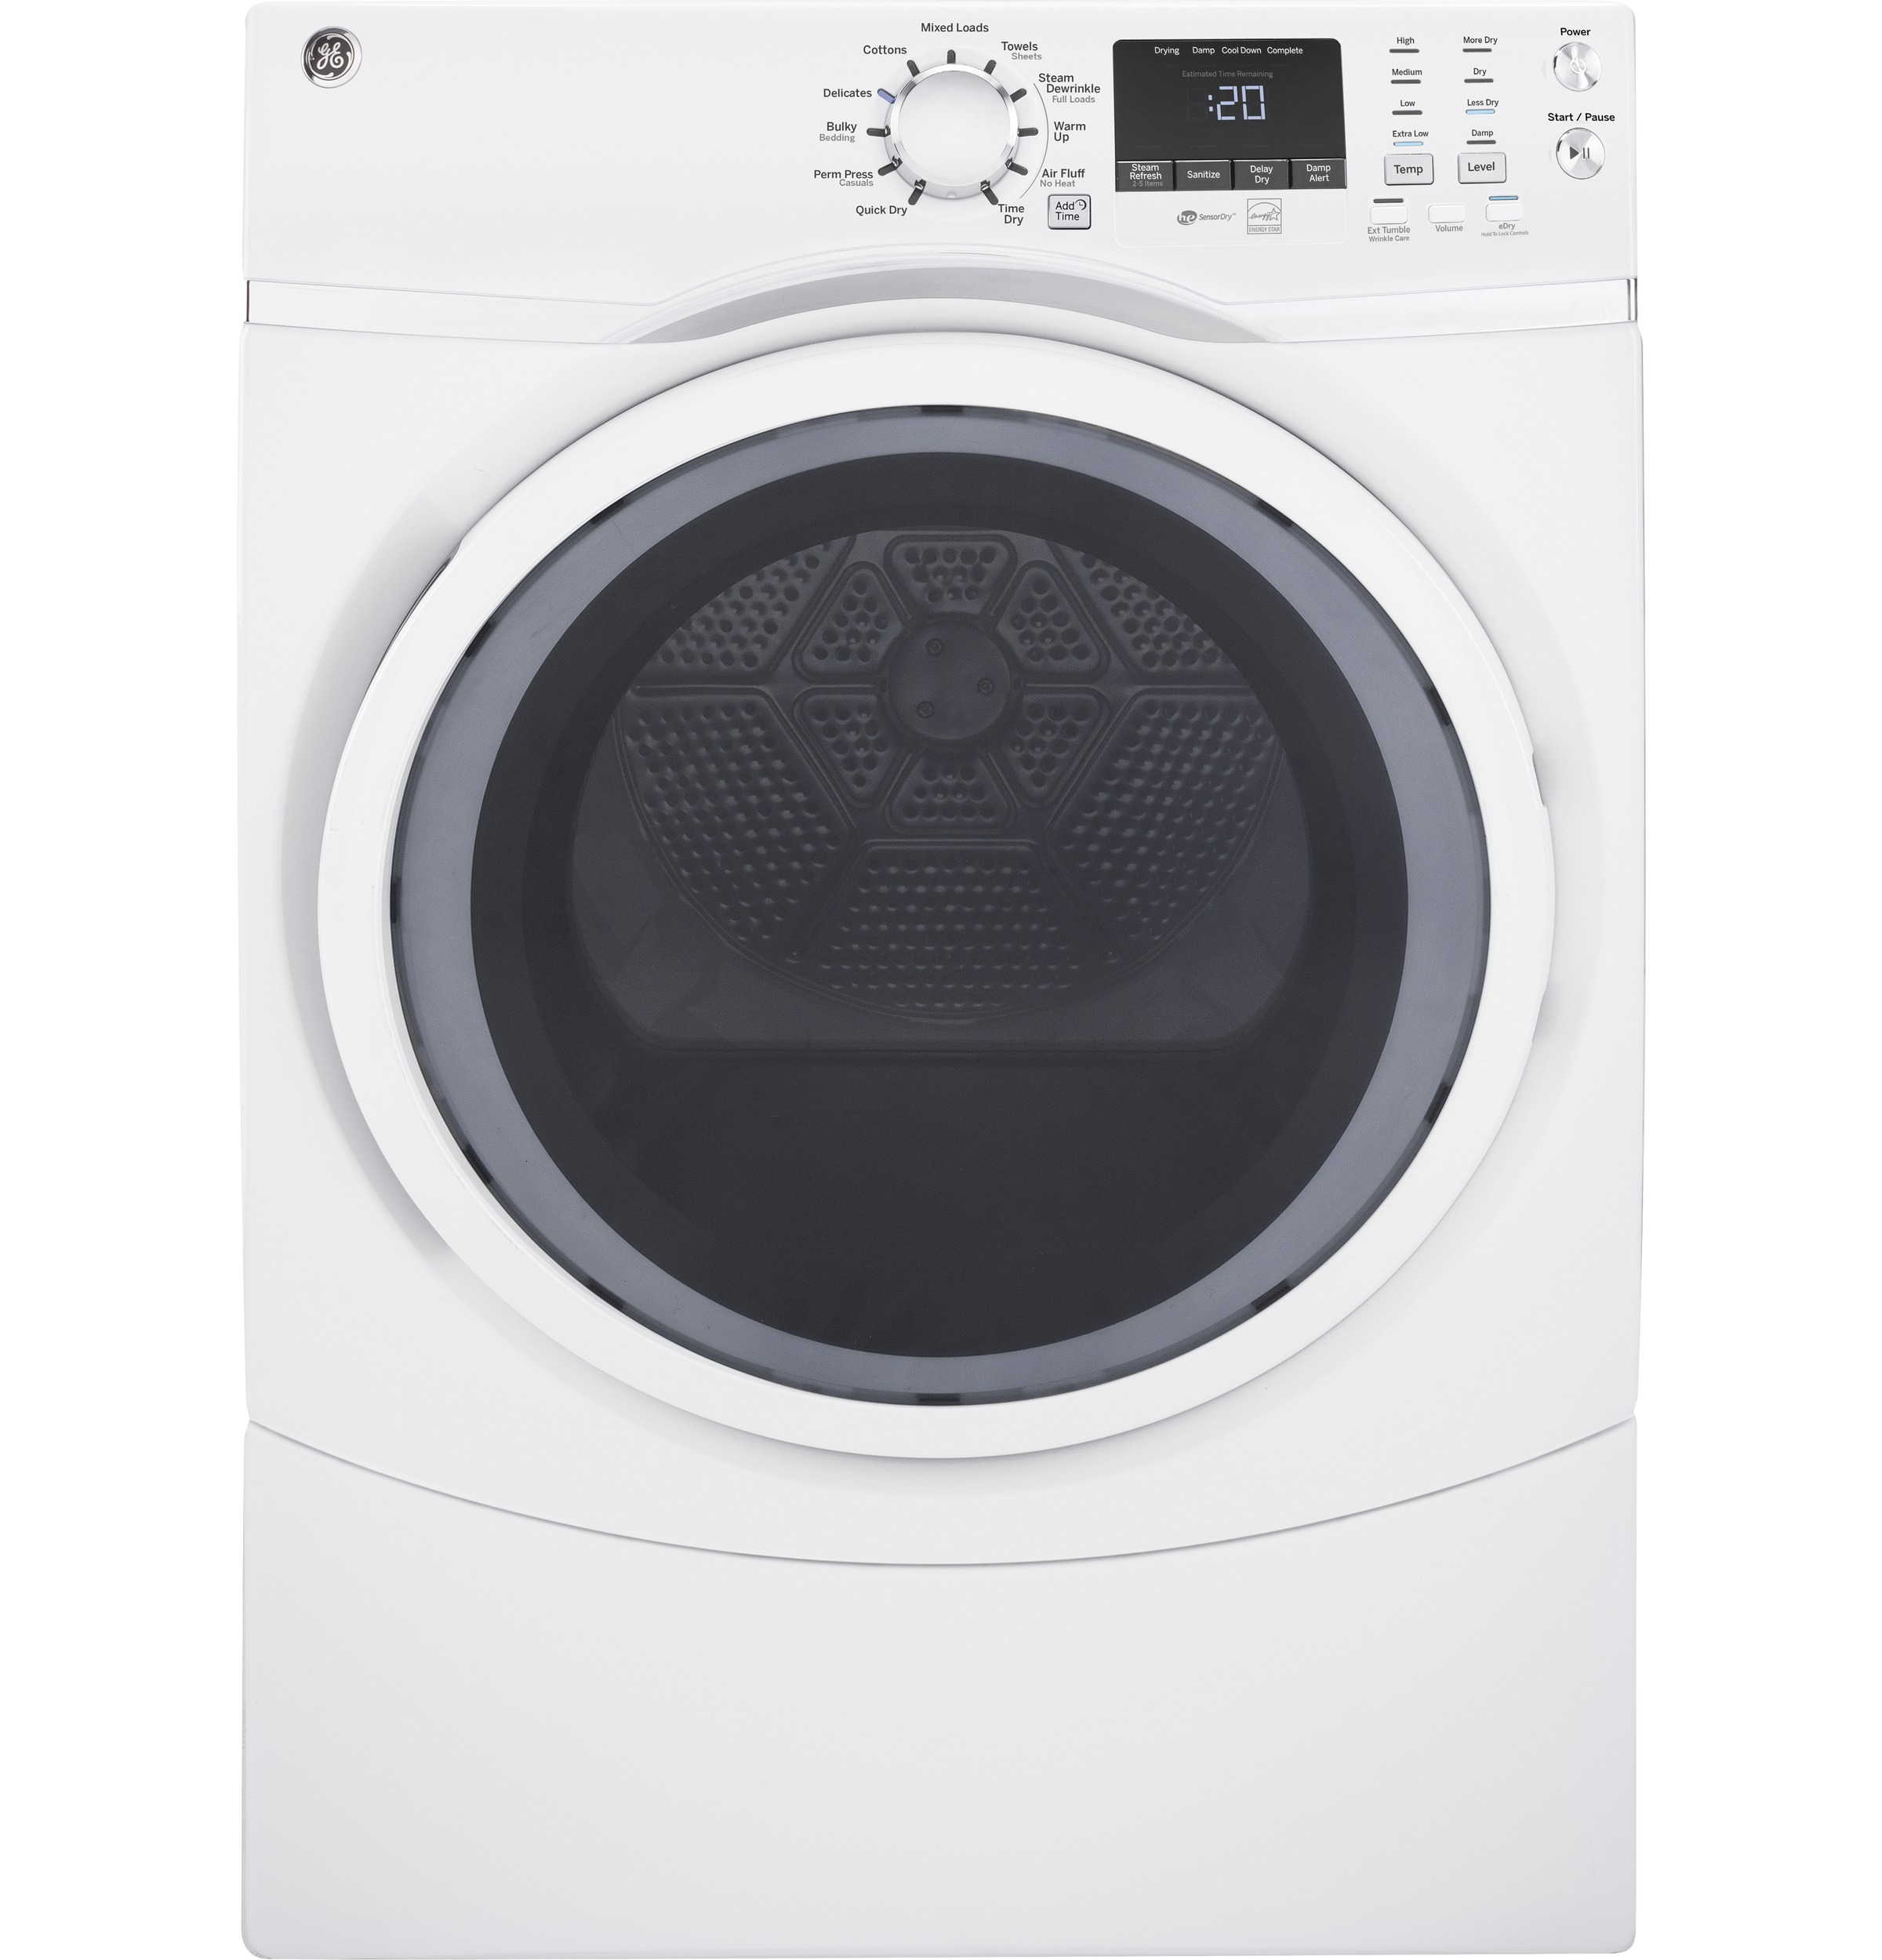 GE GE® 7.5 cu. ft. Capacity Front Load Electric Dryer with Steam